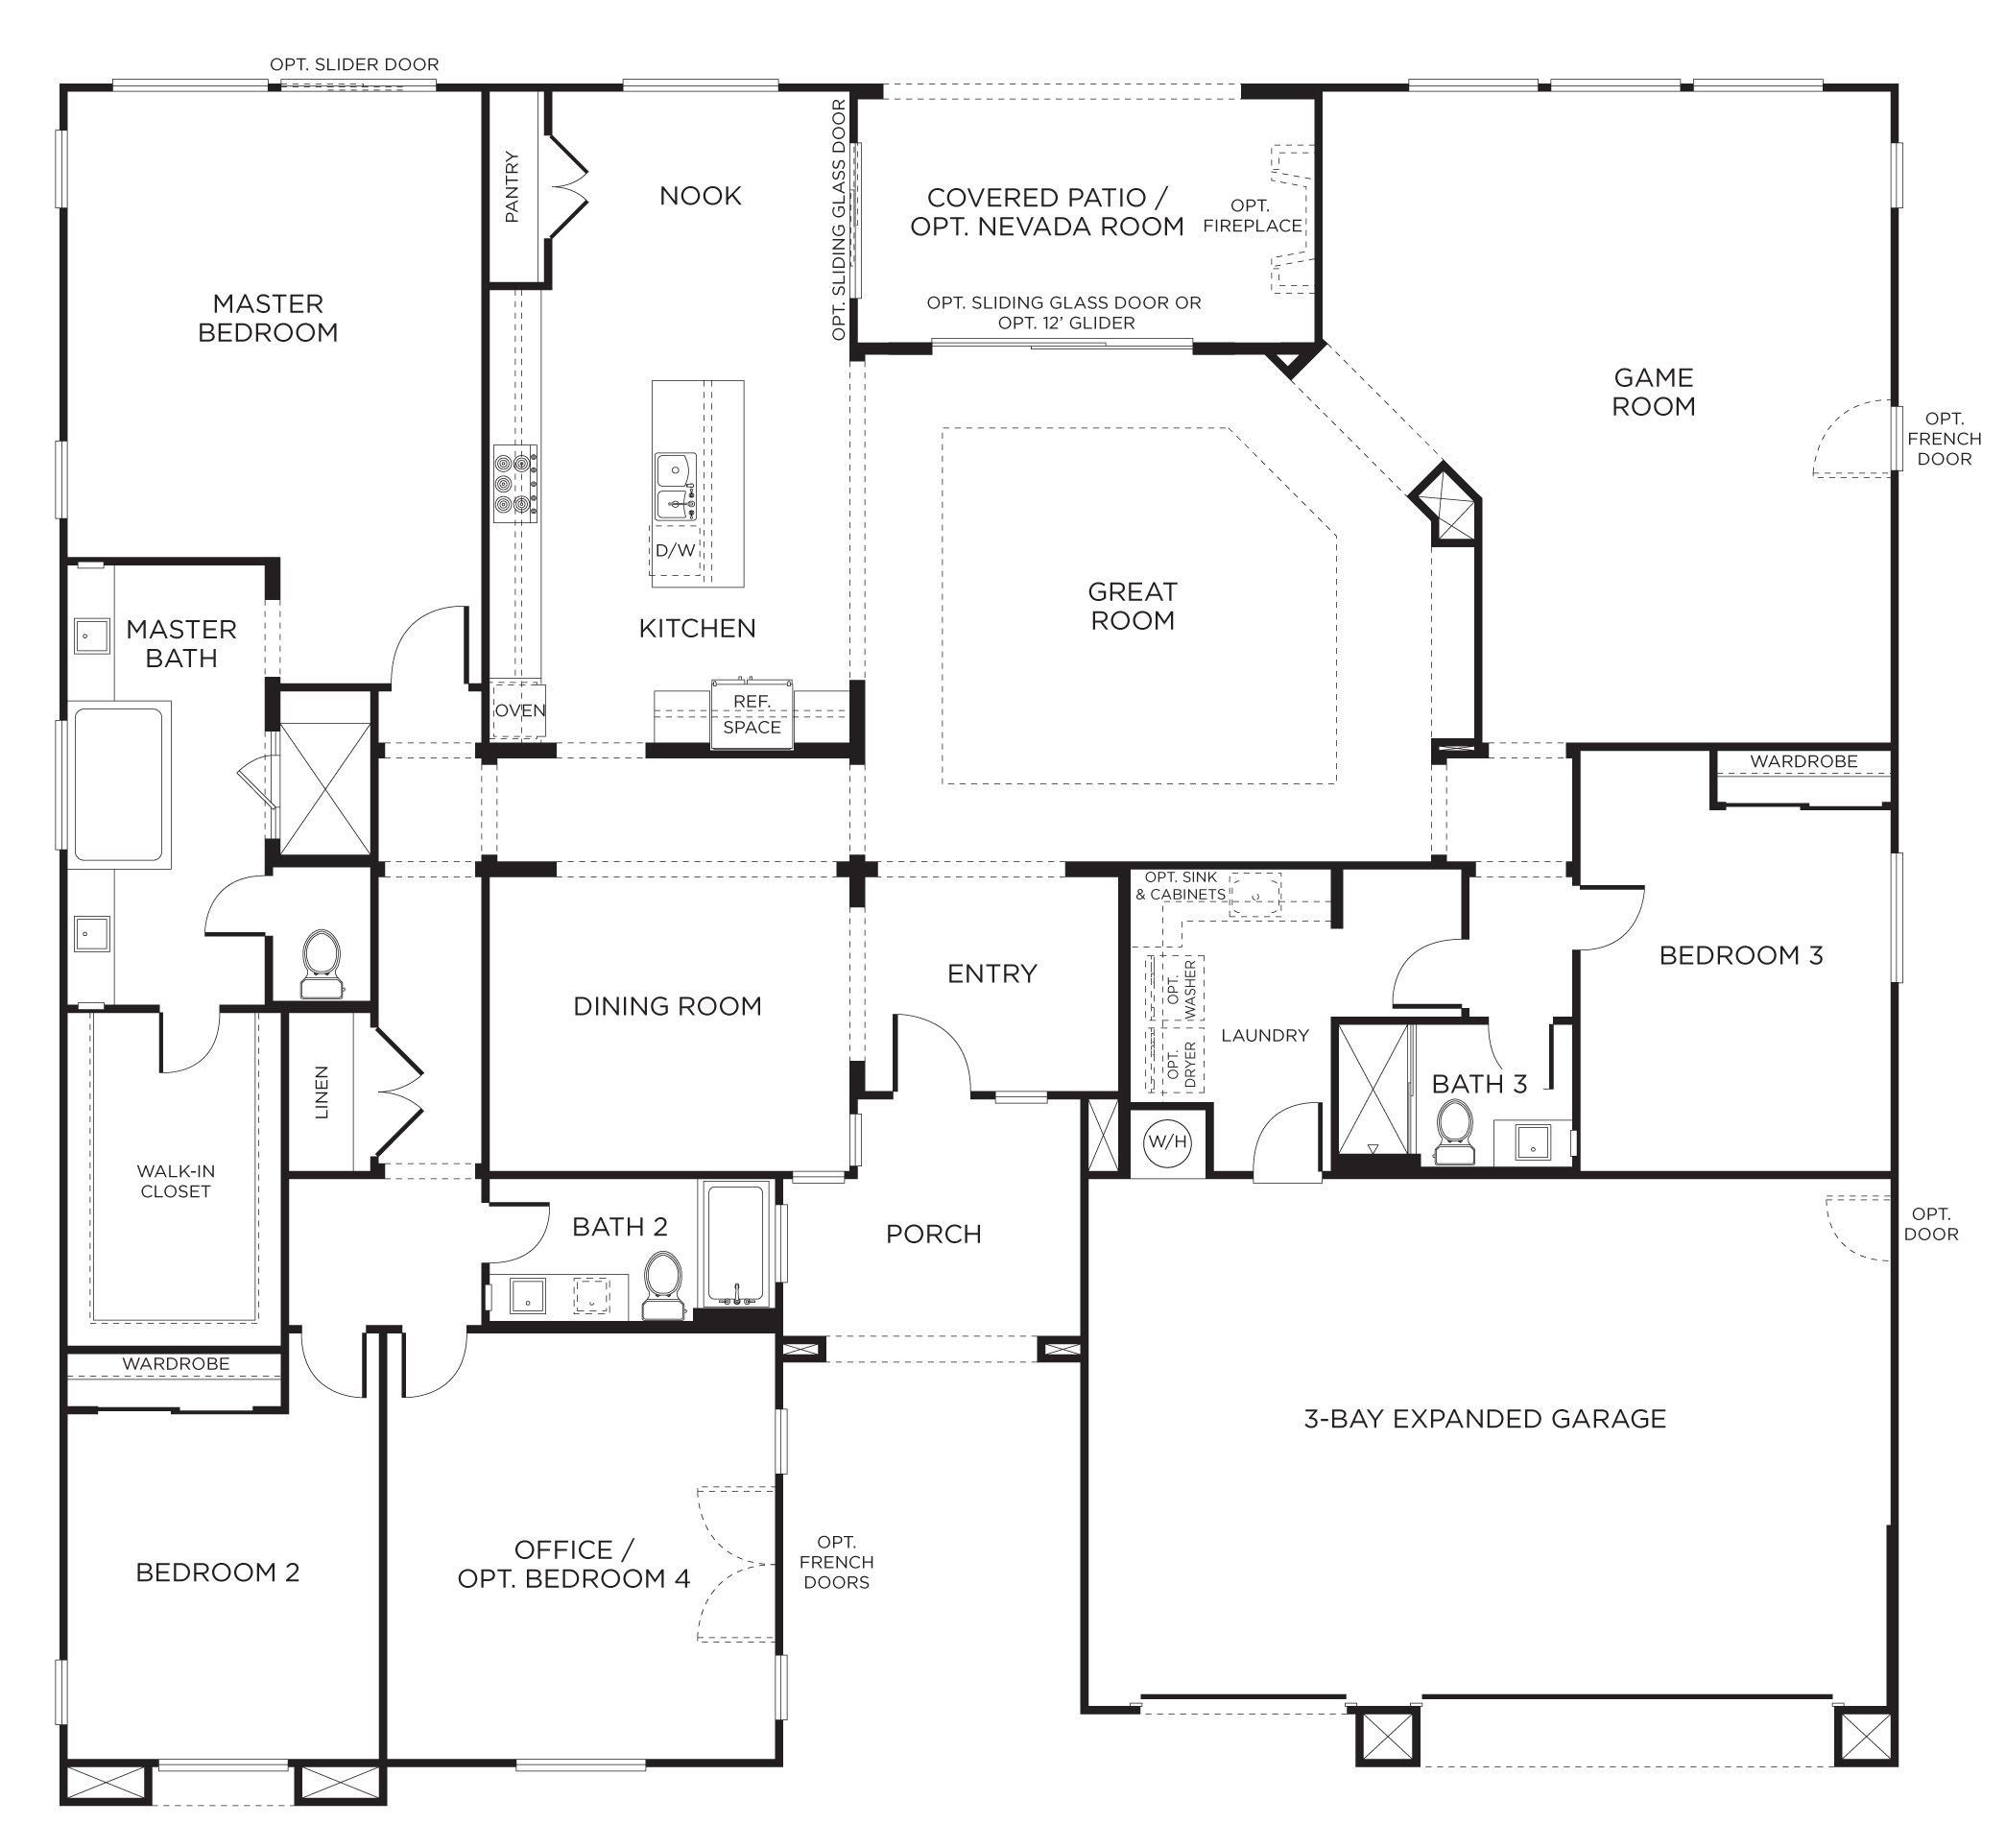 Floorplan 2 3 4 bedrooms 3 bathrooms 3400 square feet dream home pinterest square feet One floor house plans